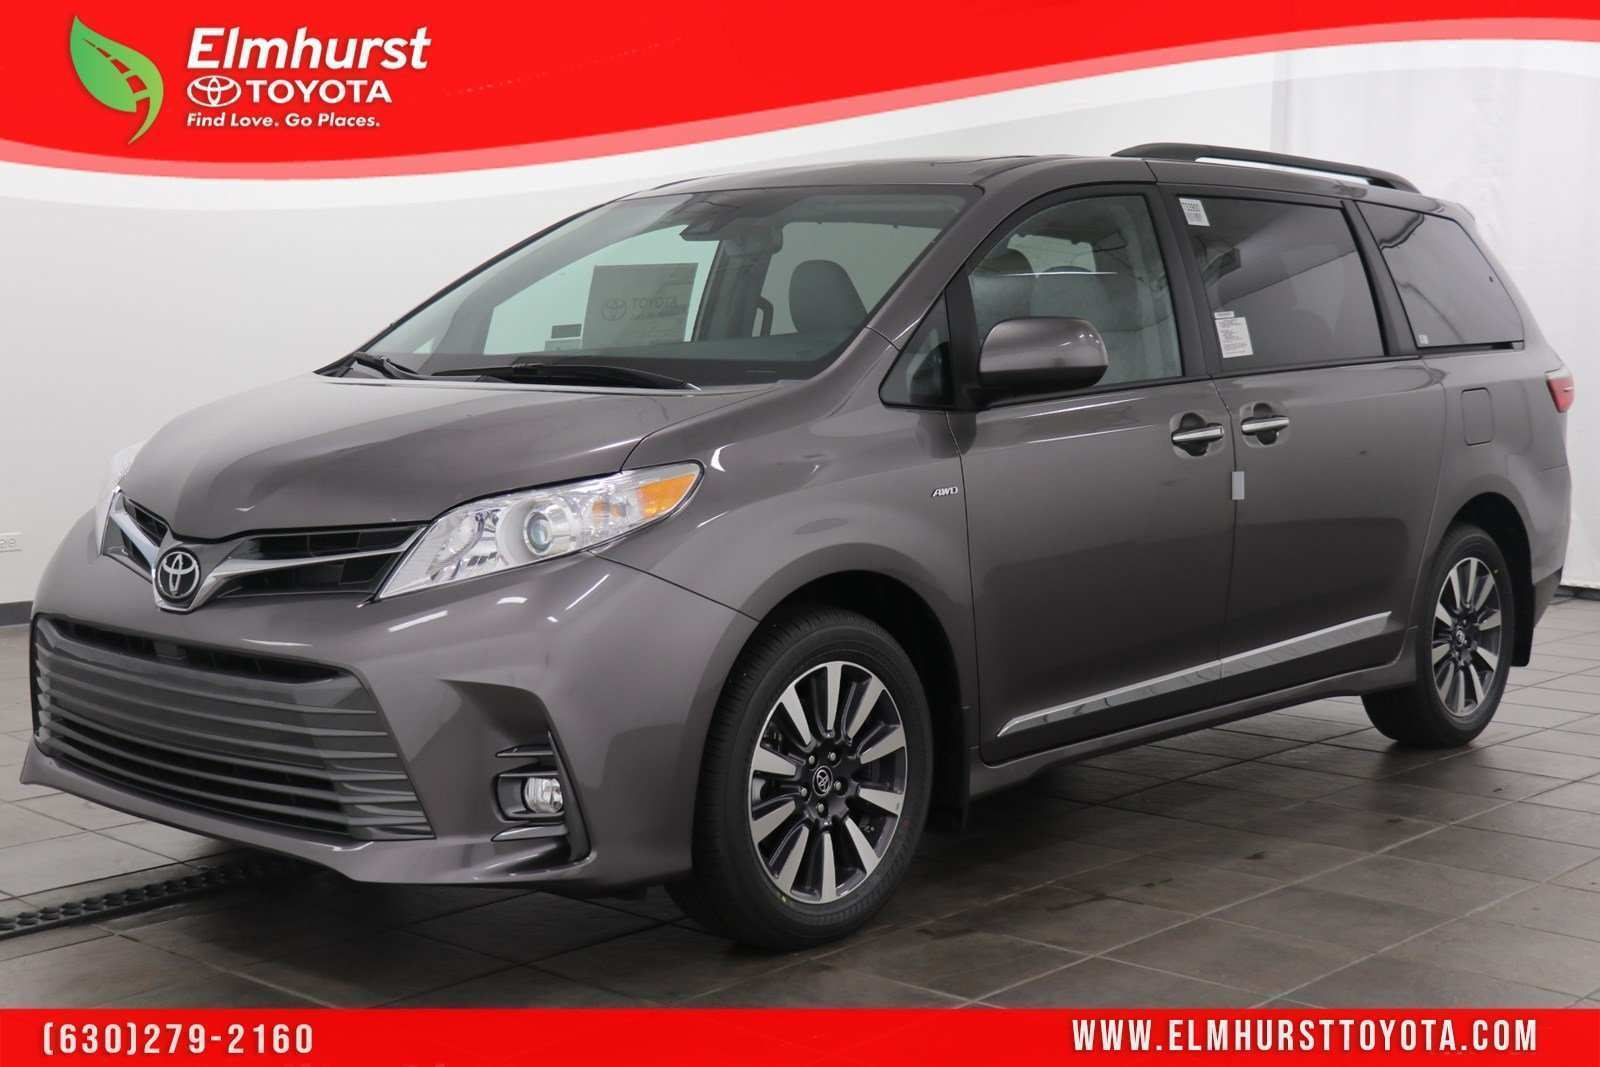 67 All New 2020 Toyota Sienna Specs